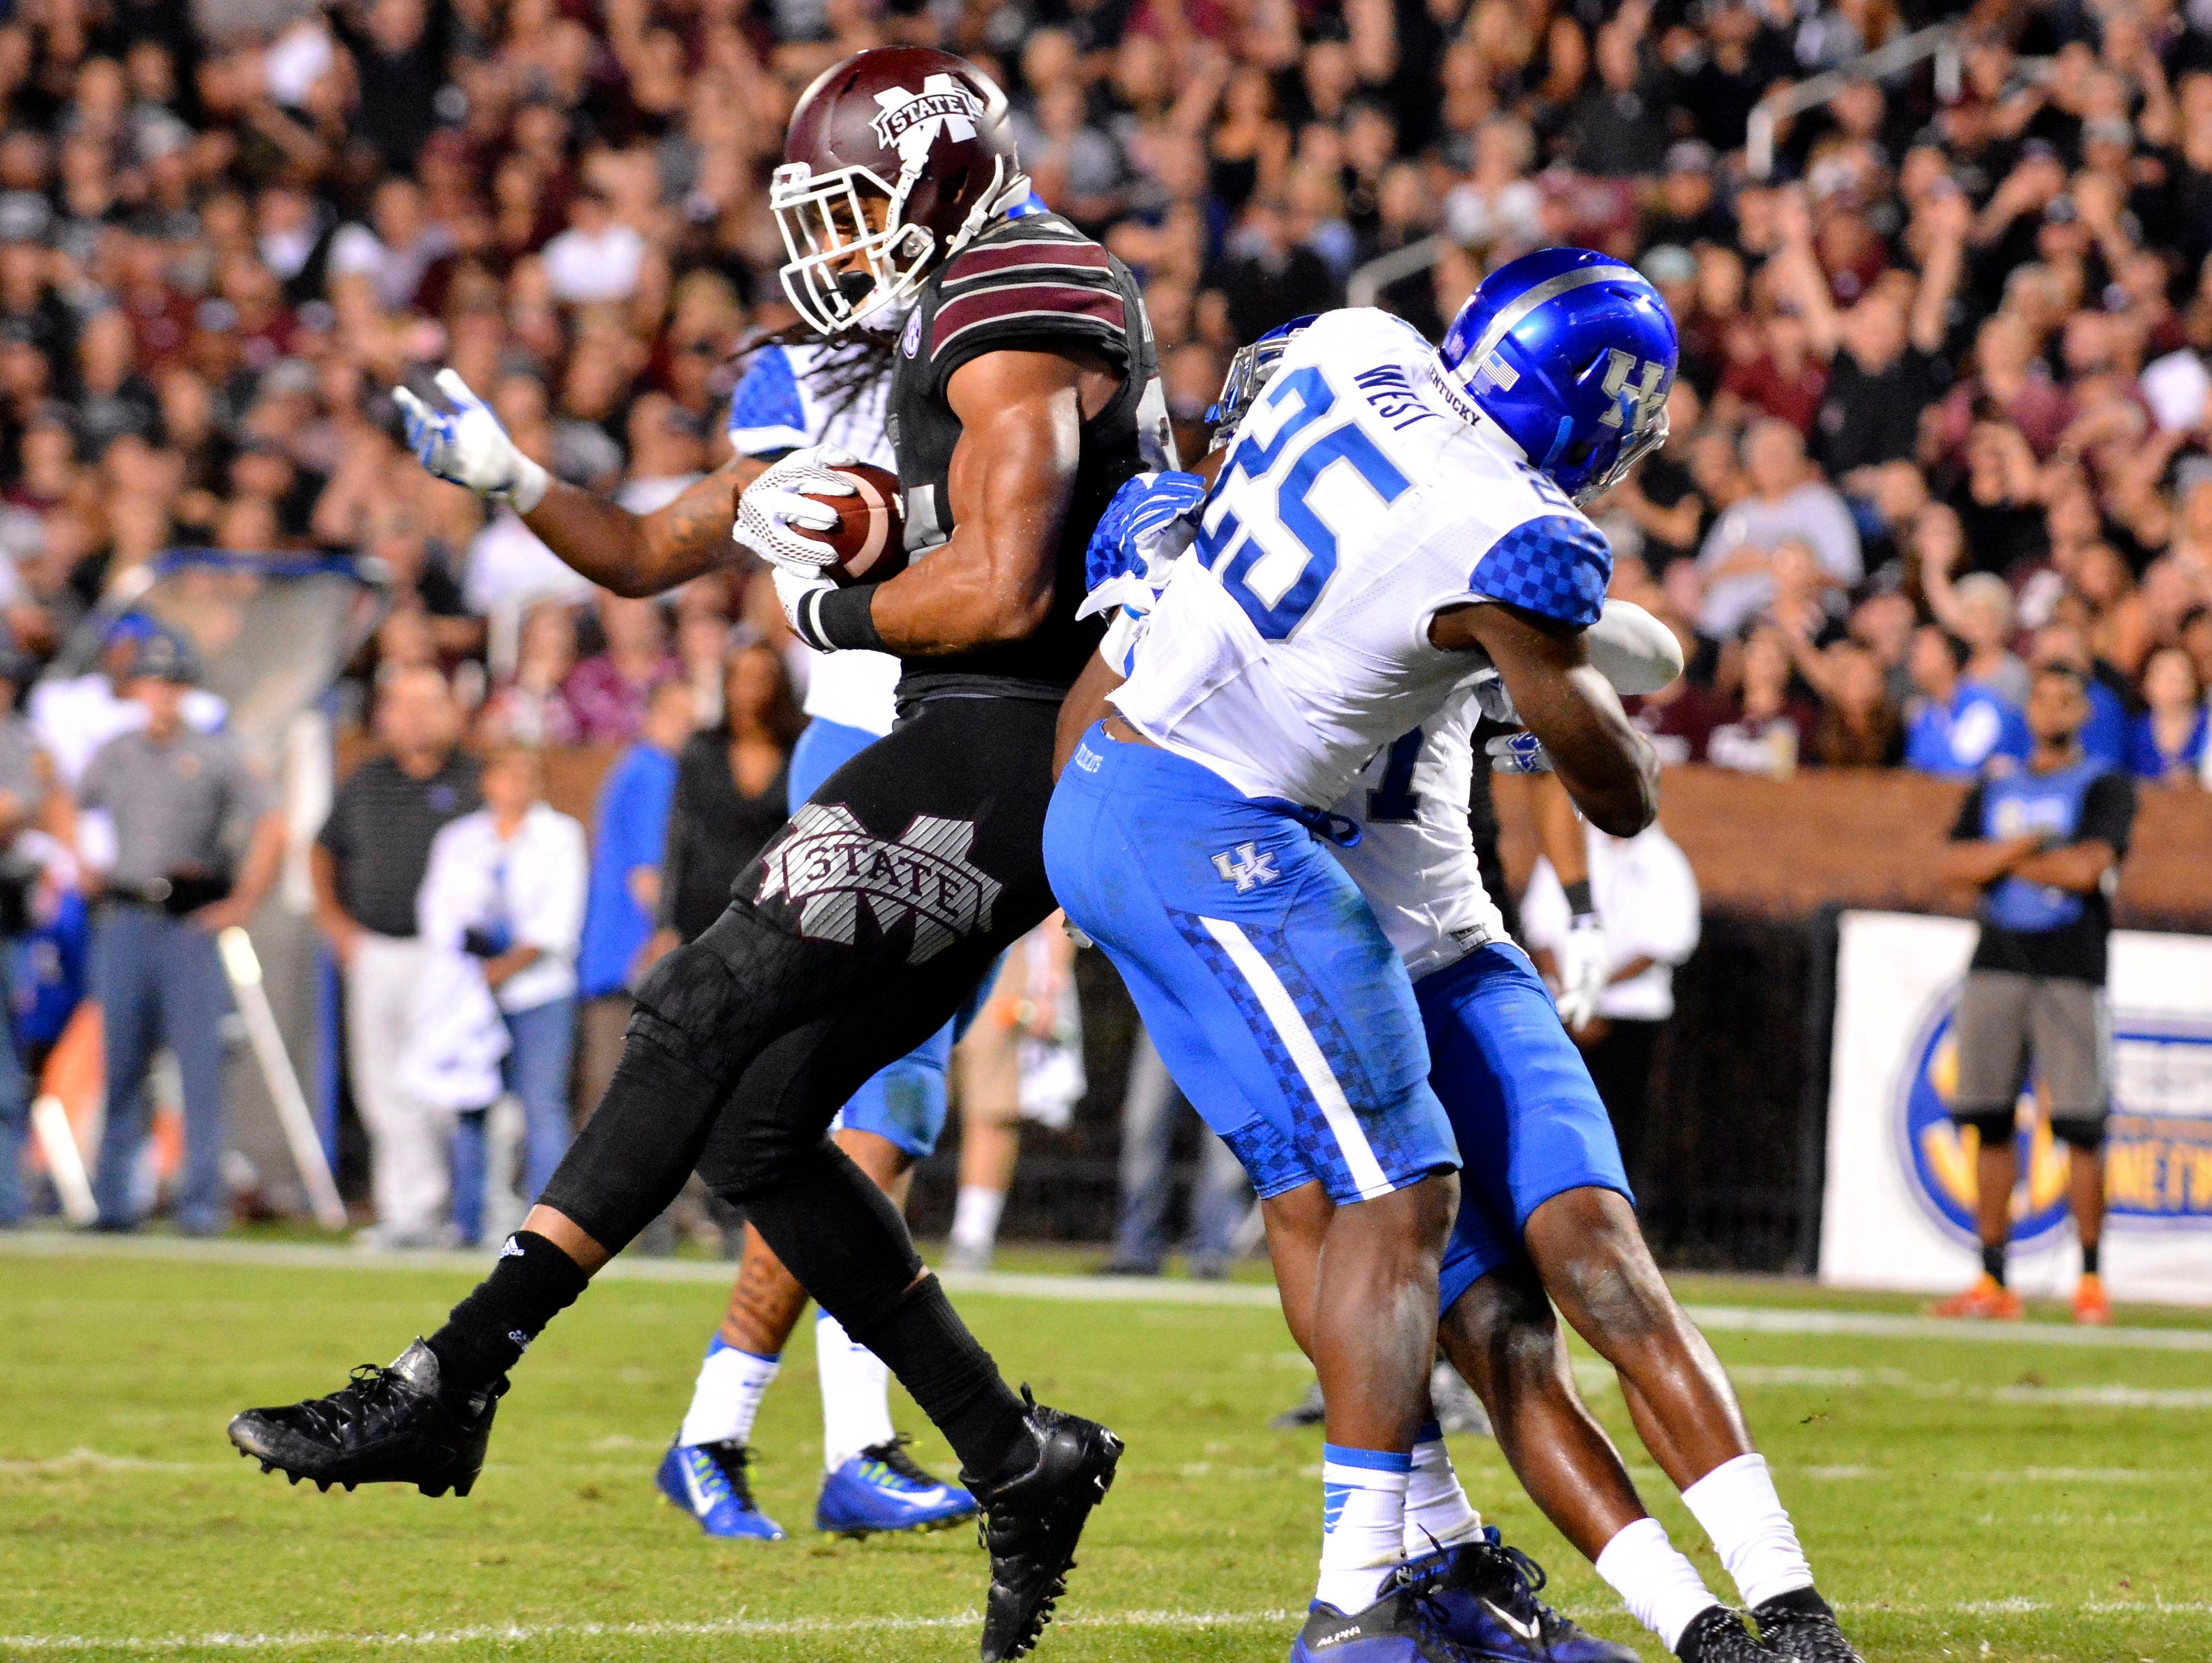 Oct 24, 2015; Starkville, MS, USA; Mississippi State Bulldogs tight end Darrion Hutcherson (84) comes down with a pass in the end zone as he is defended by Kentucky Wildcats safety Darius West (25) during the third quarter of the game against the Kentucky Wildcats at Davis Wade Stadium. Mississippi State won 42-16.